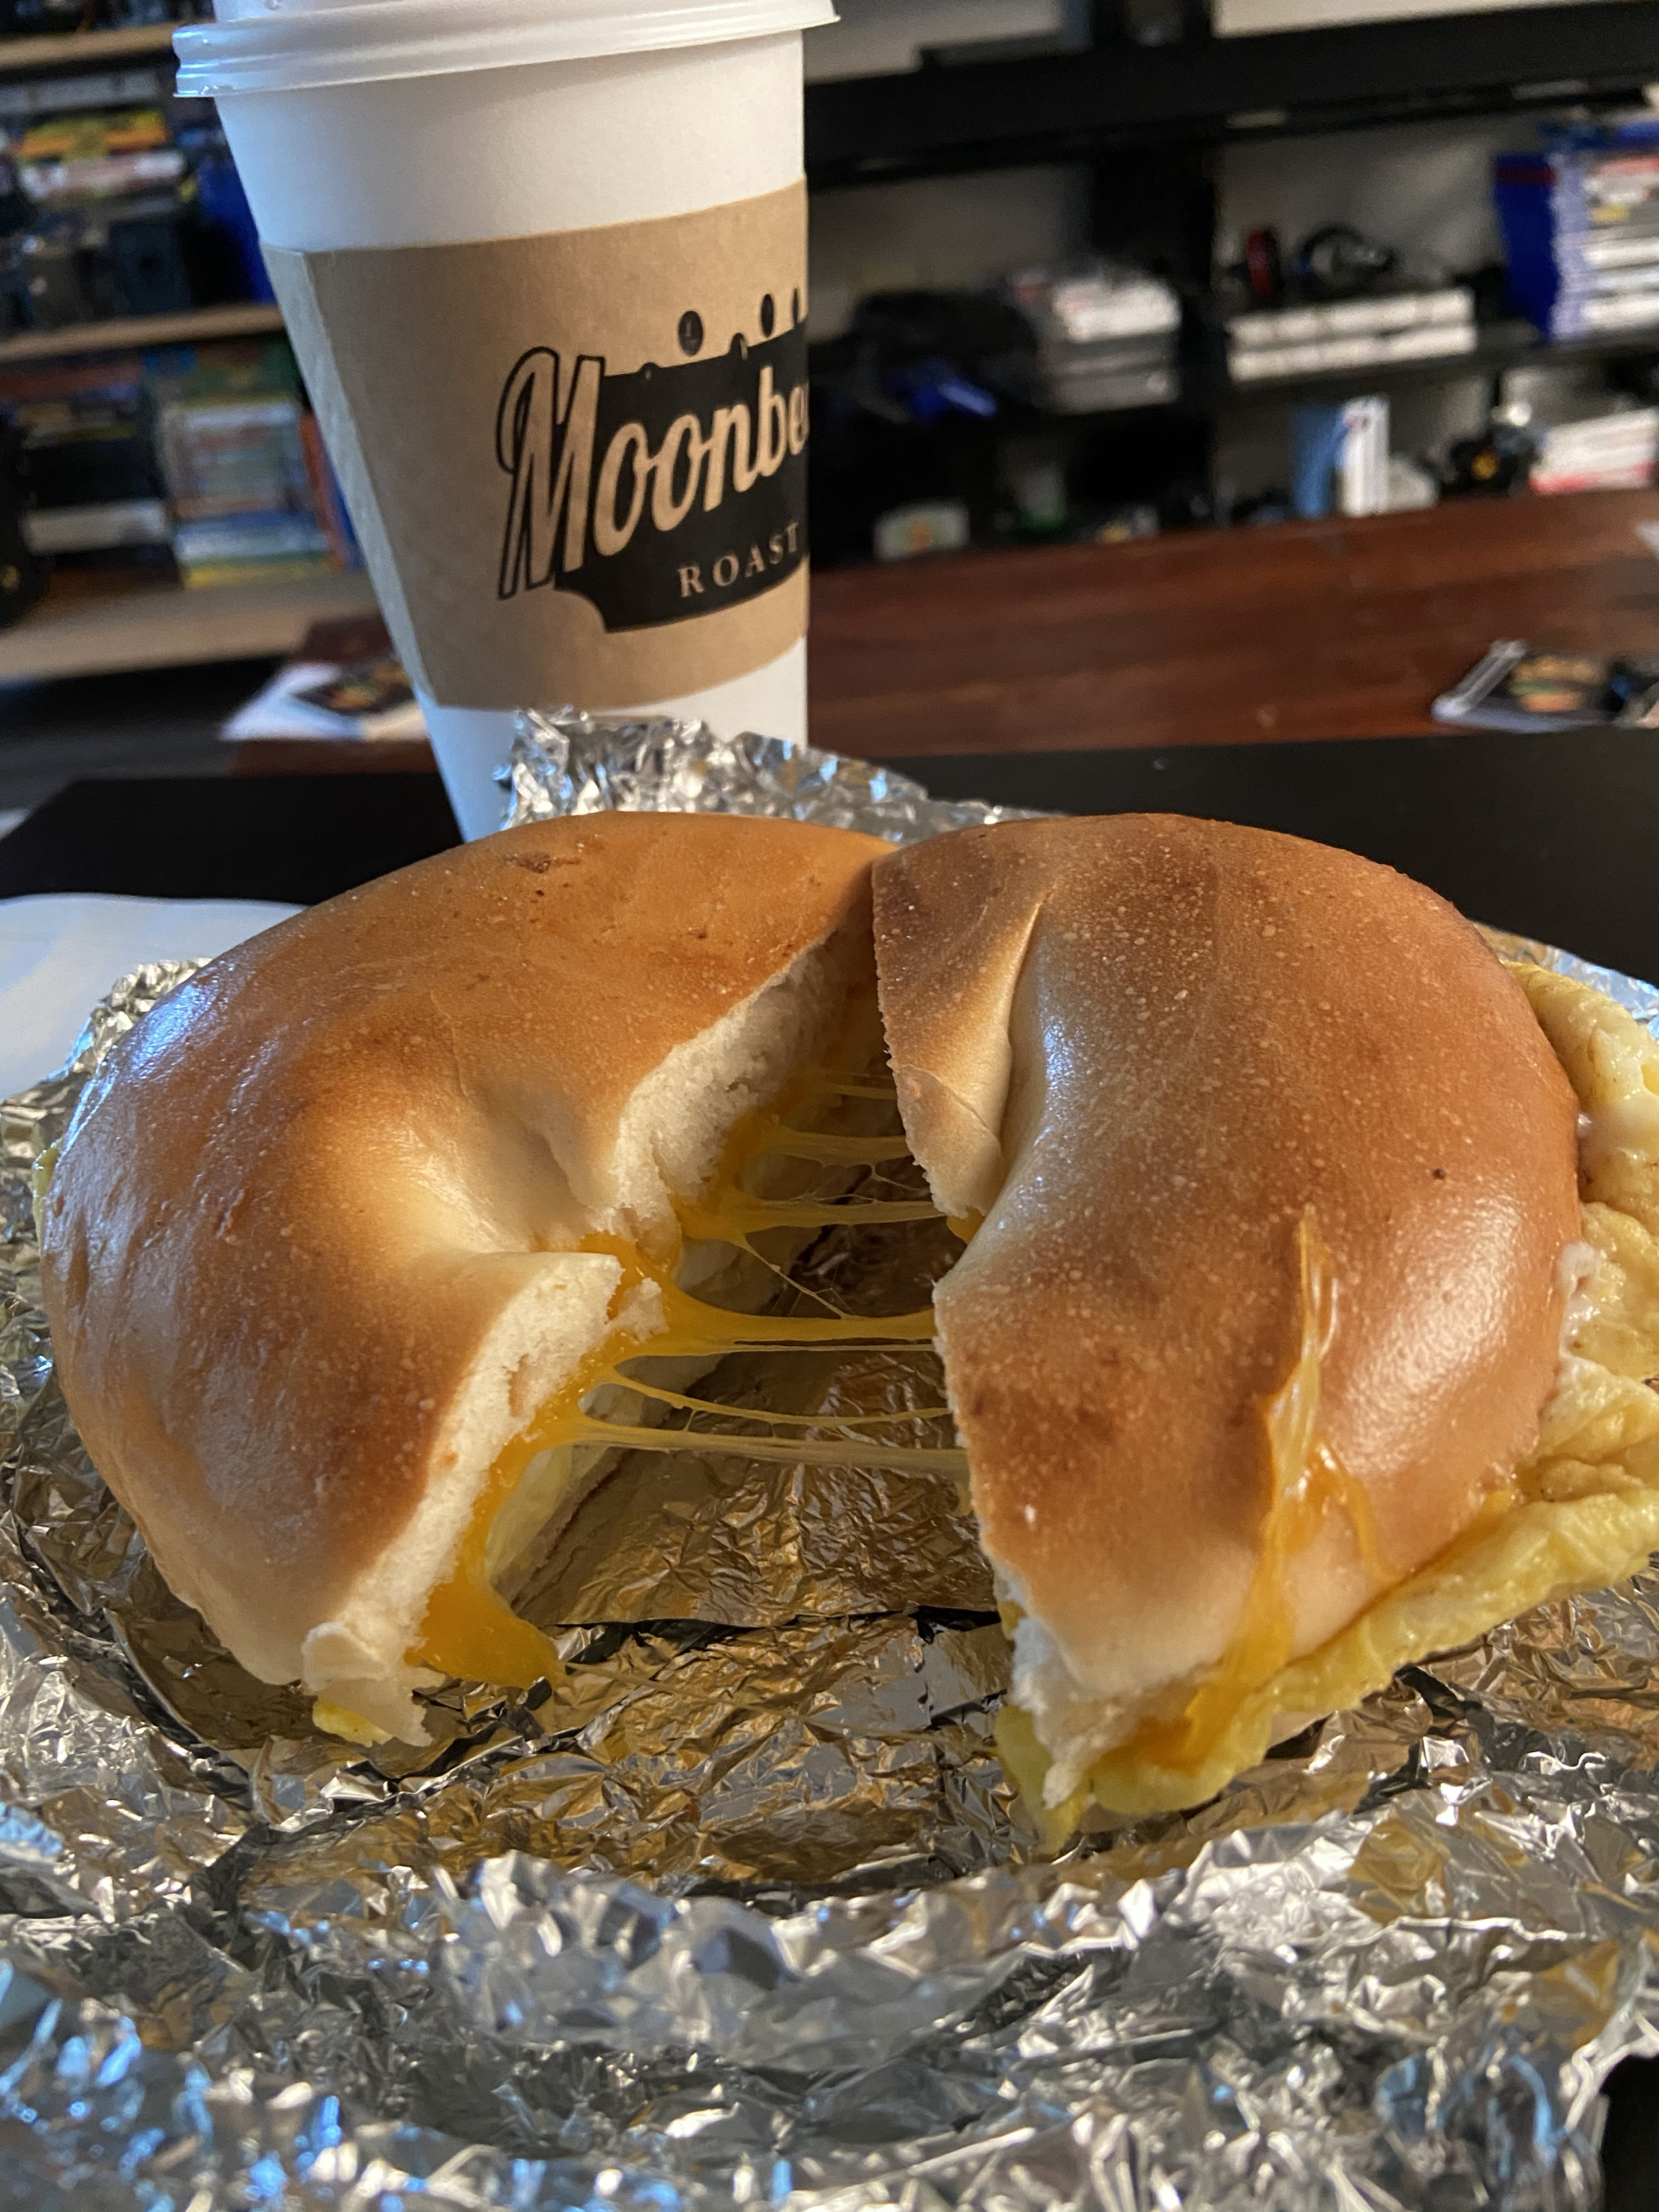 Classic Bagel Sandwich from New Moon Cafe